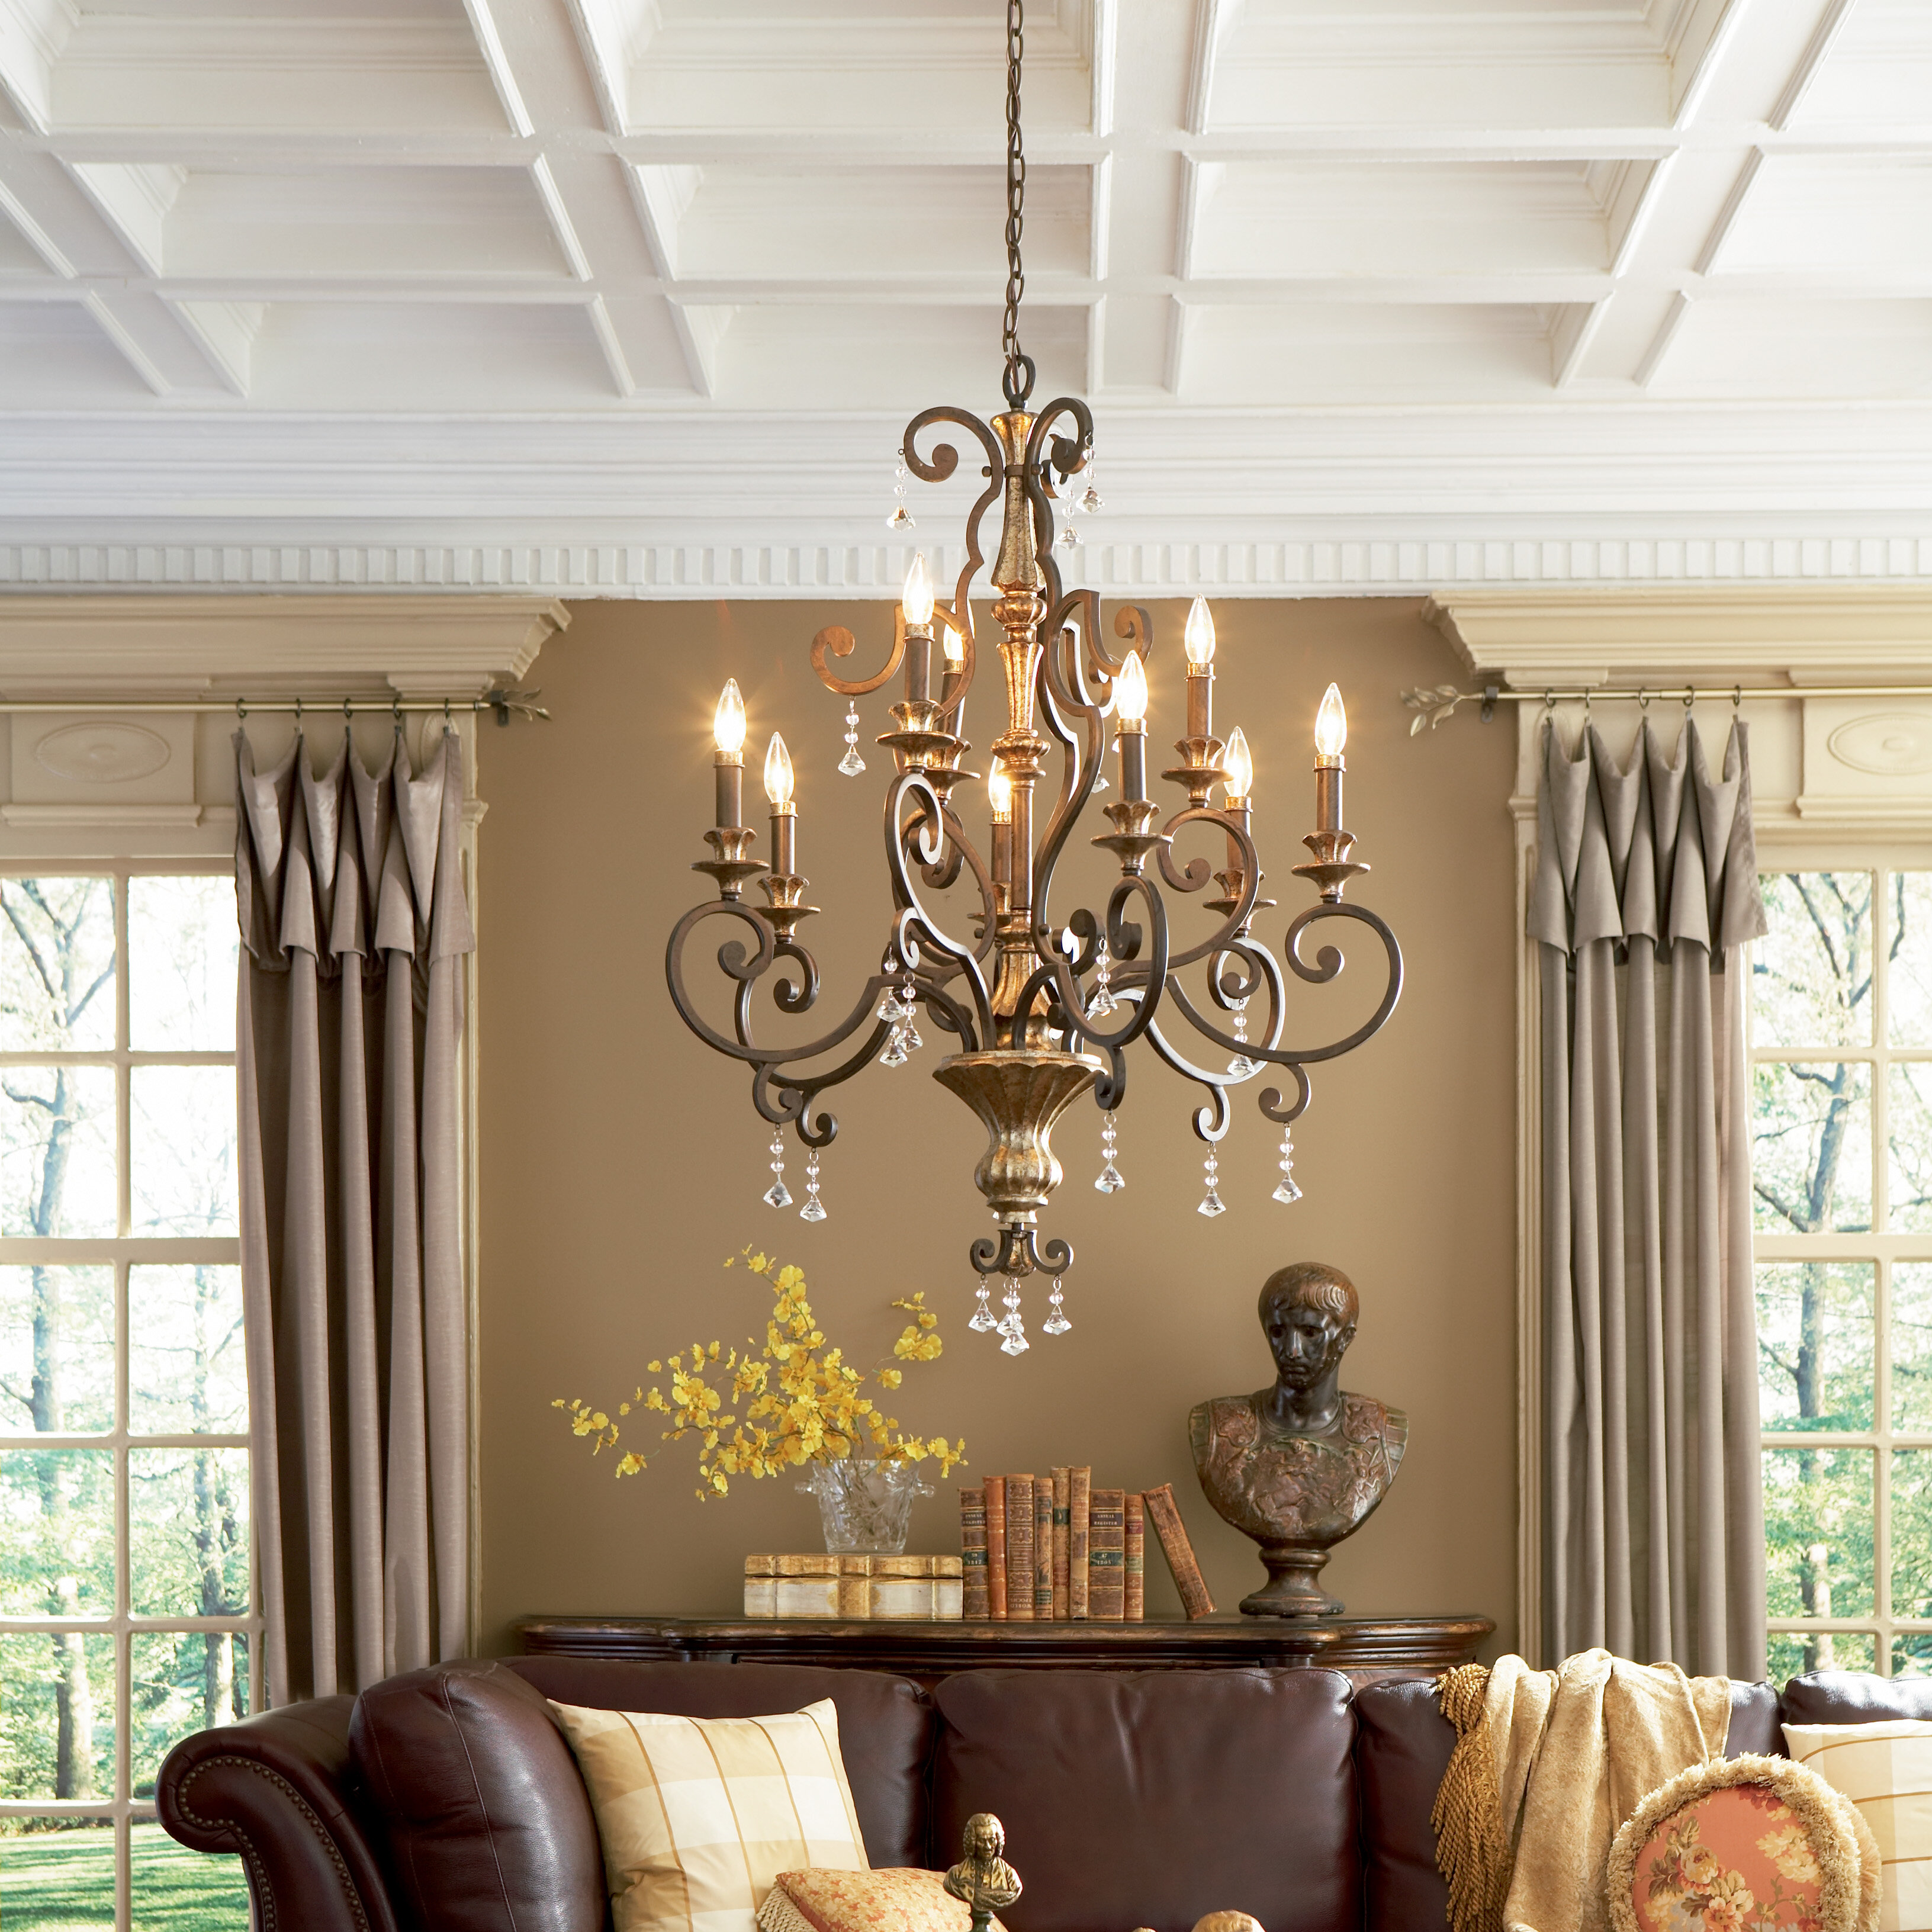 Astoria grand windsor rise 9 light candle style chandelier astoria grand windsor rise 9 light candle style chandelier reviews wayfair arubaitofo Gallery